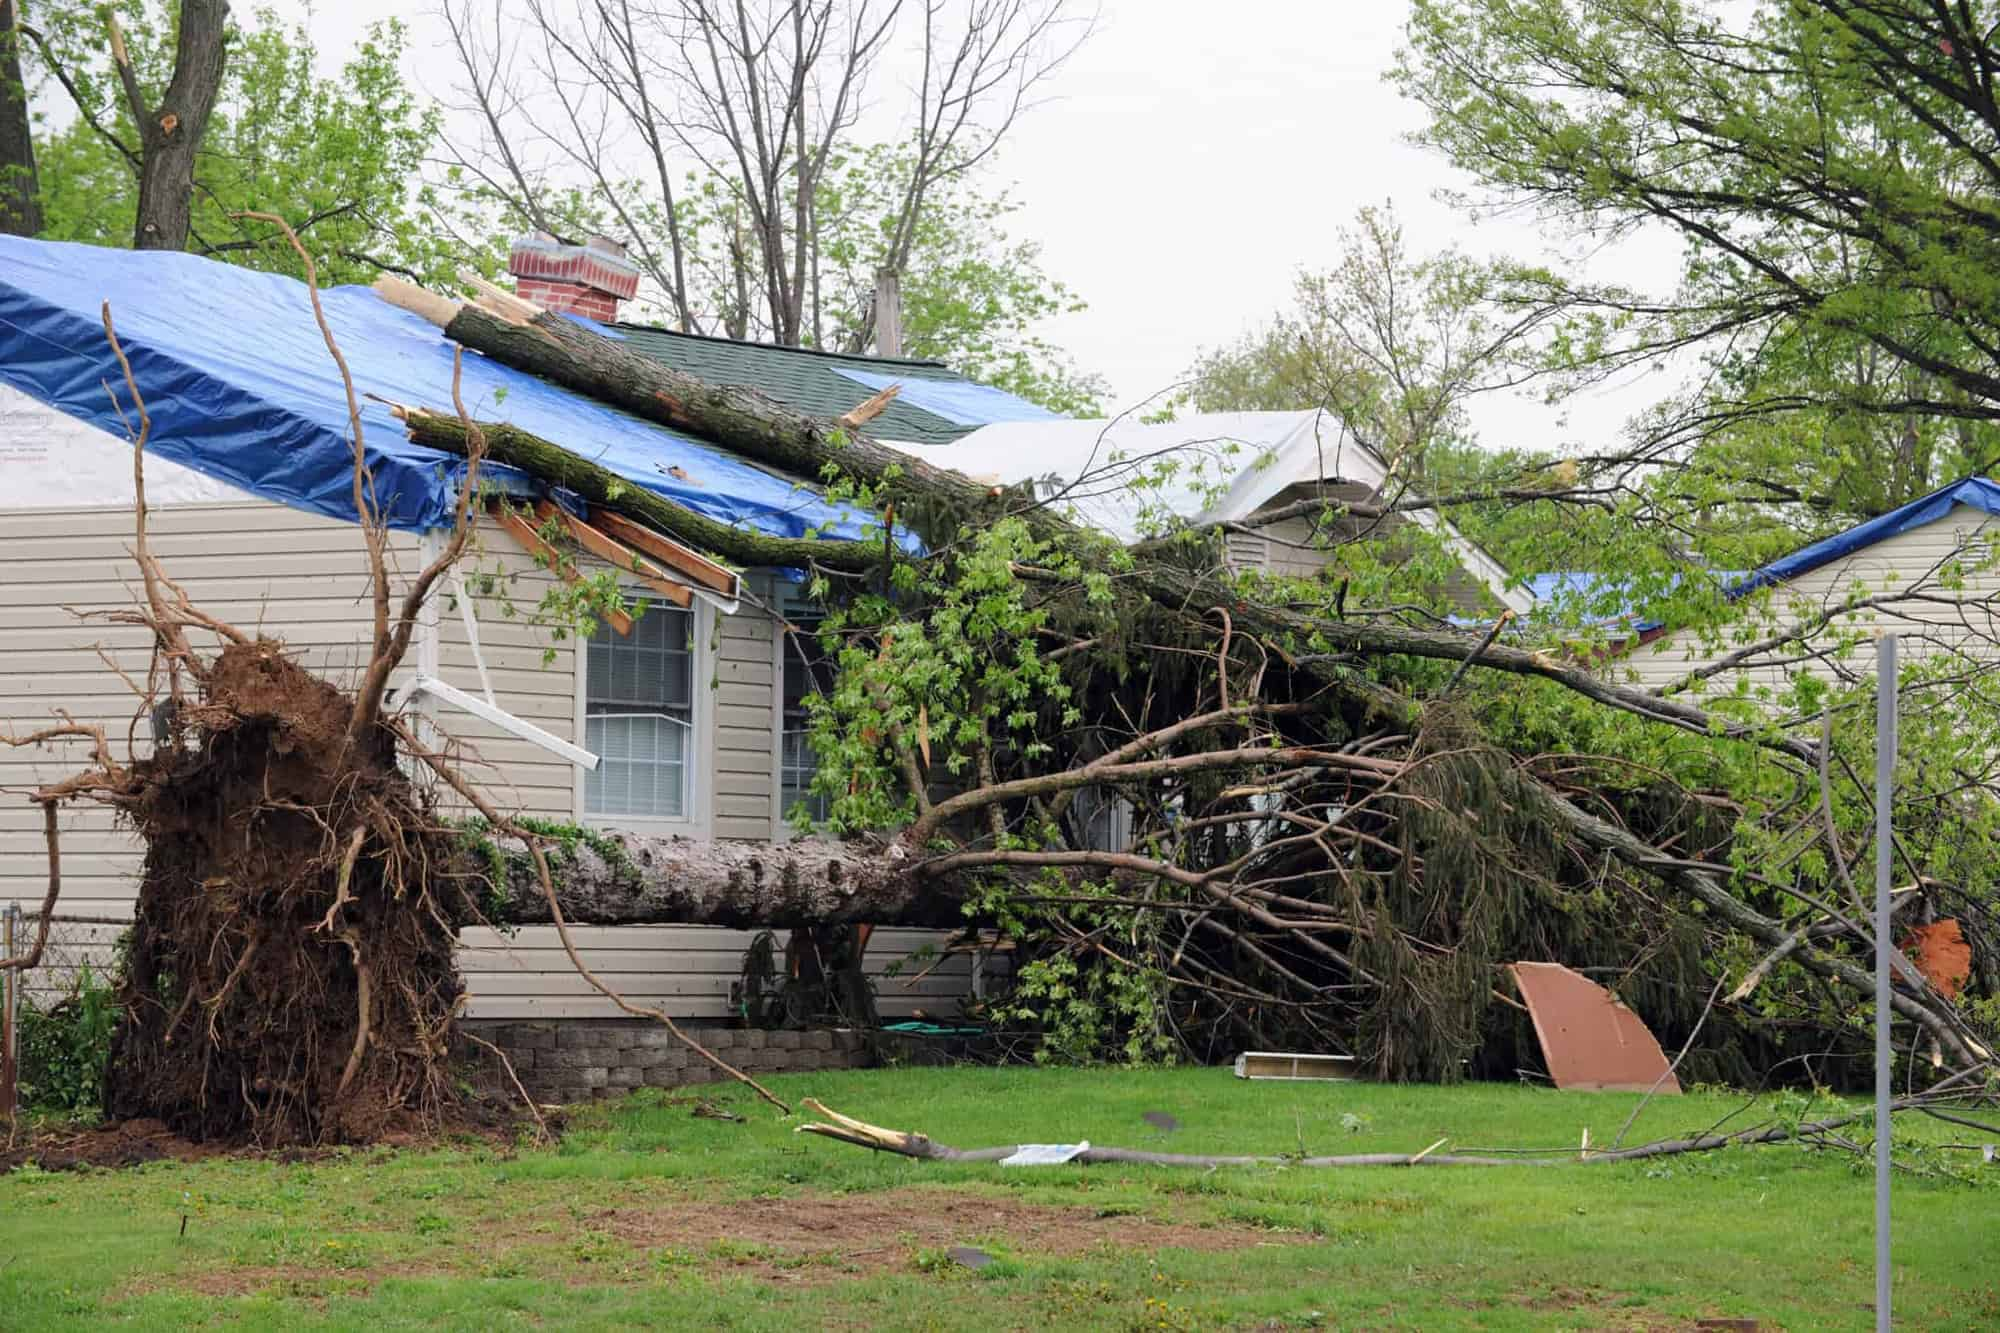 CleanMaster Services responds to and restores property damaged by wind and storms